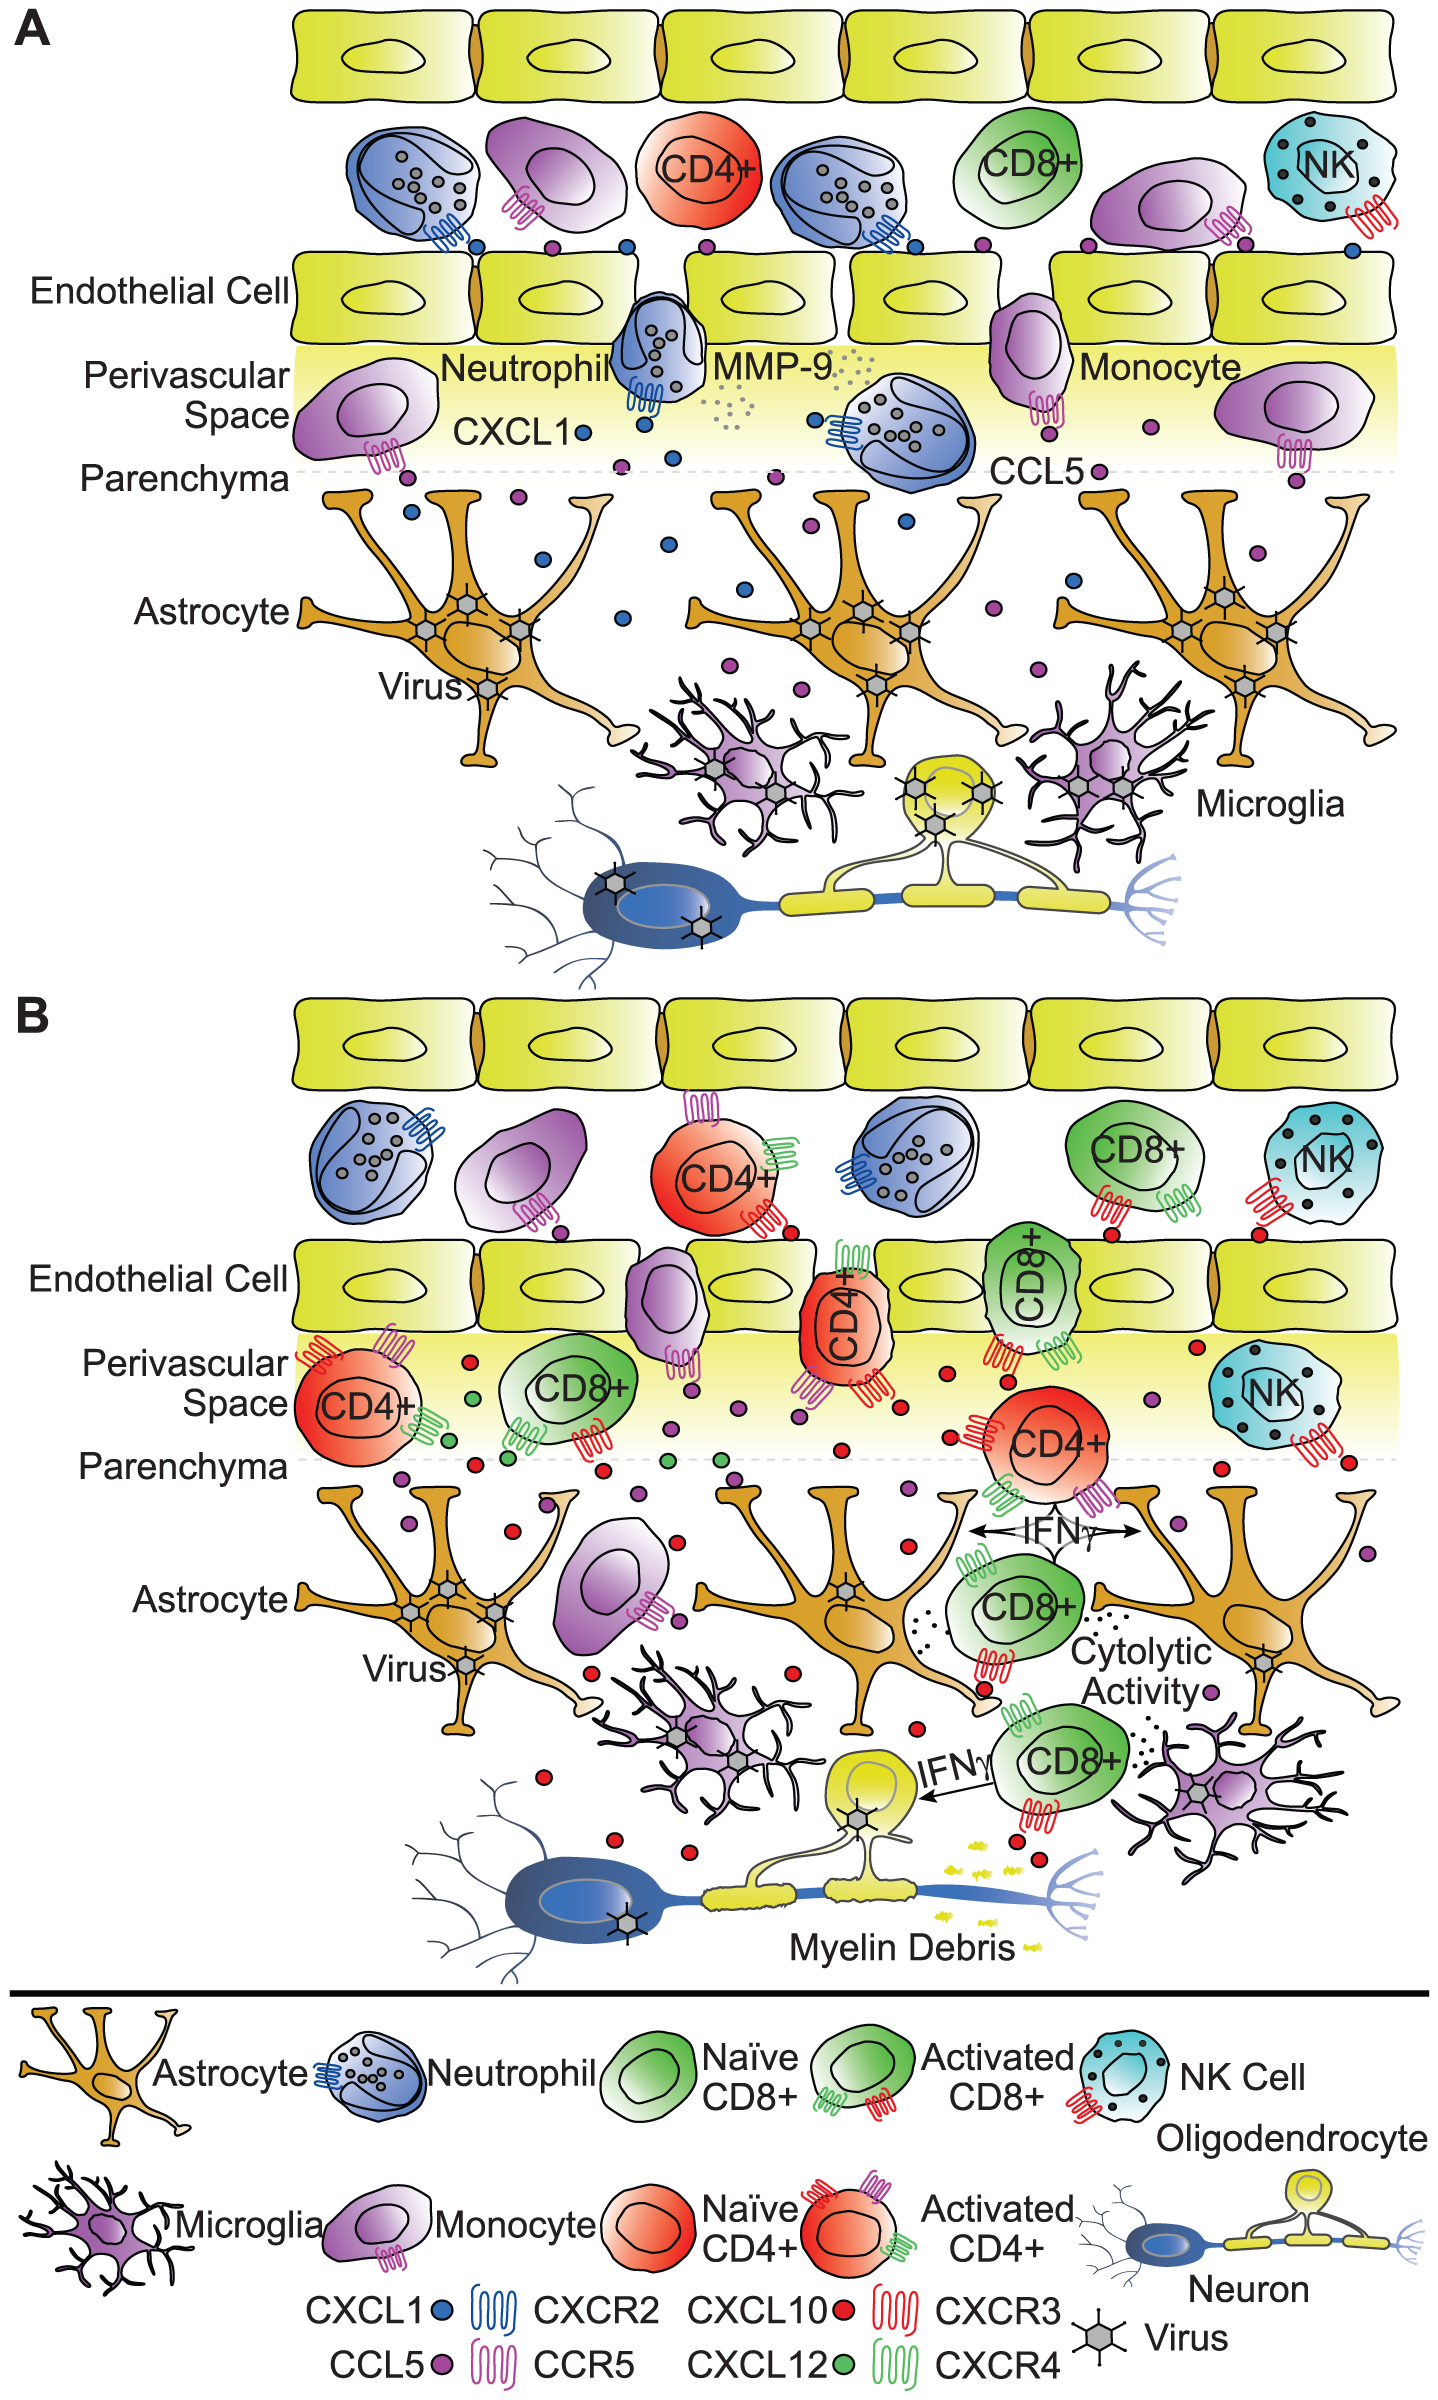 Functional roles of chemokines in response to viral infection of the CNS.